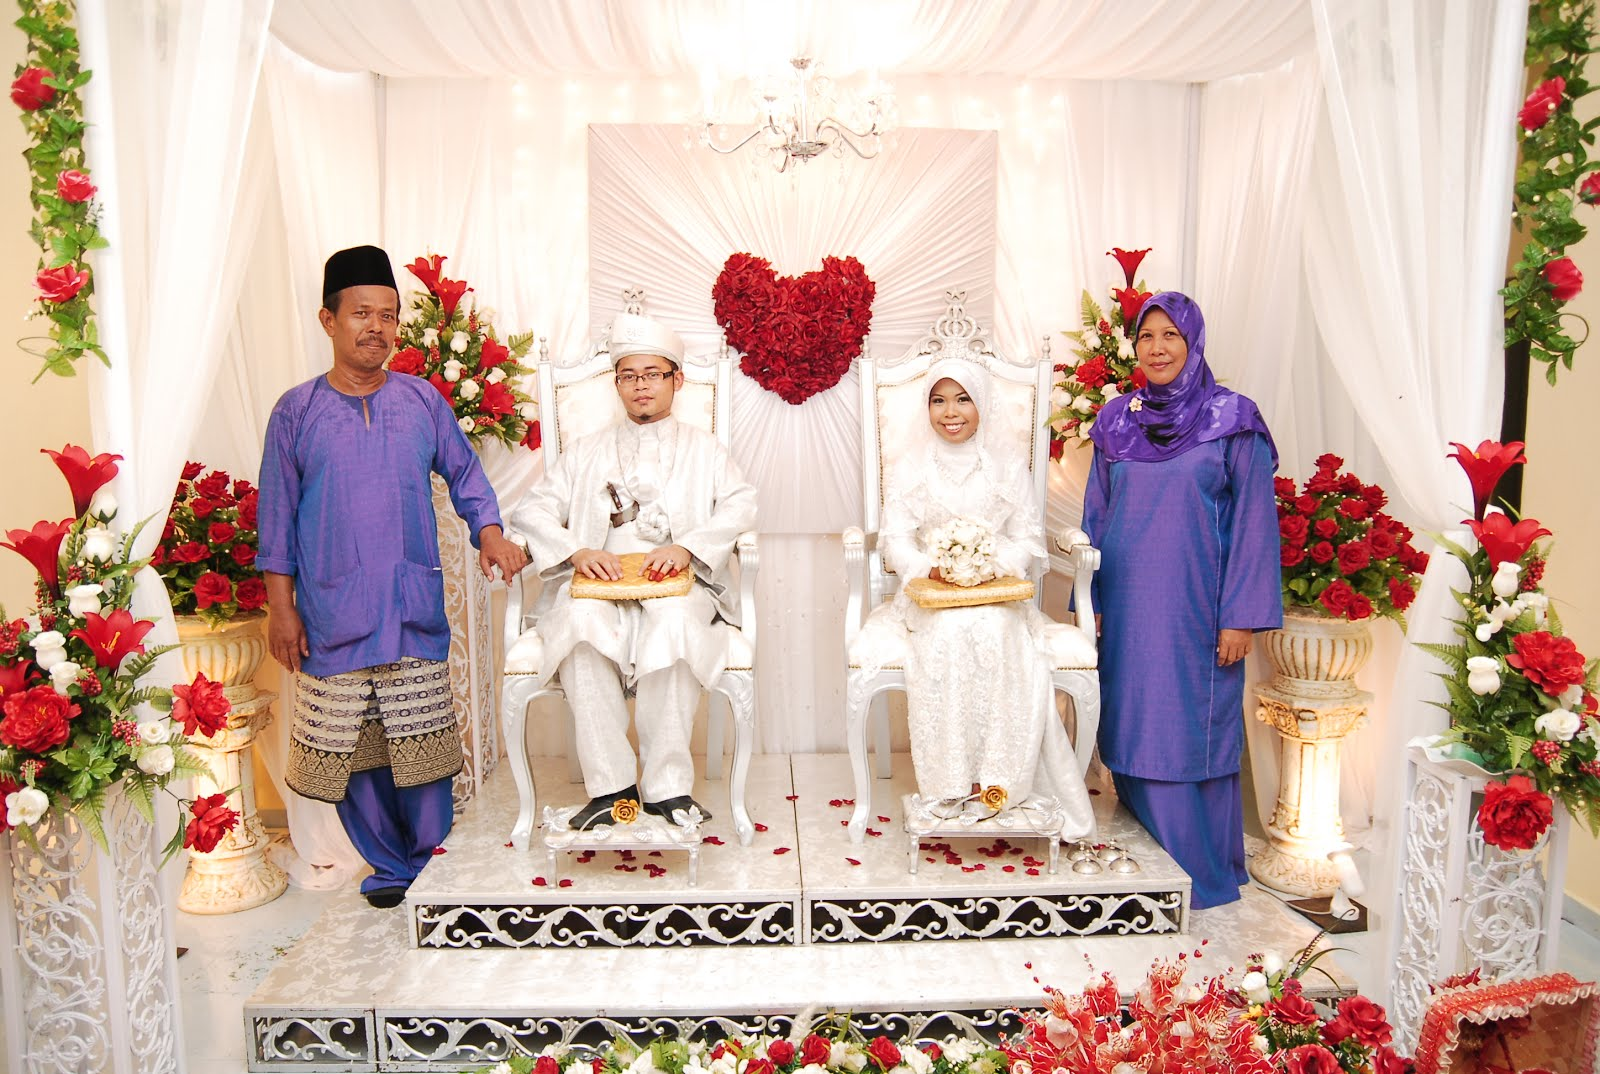 auyun's wedding